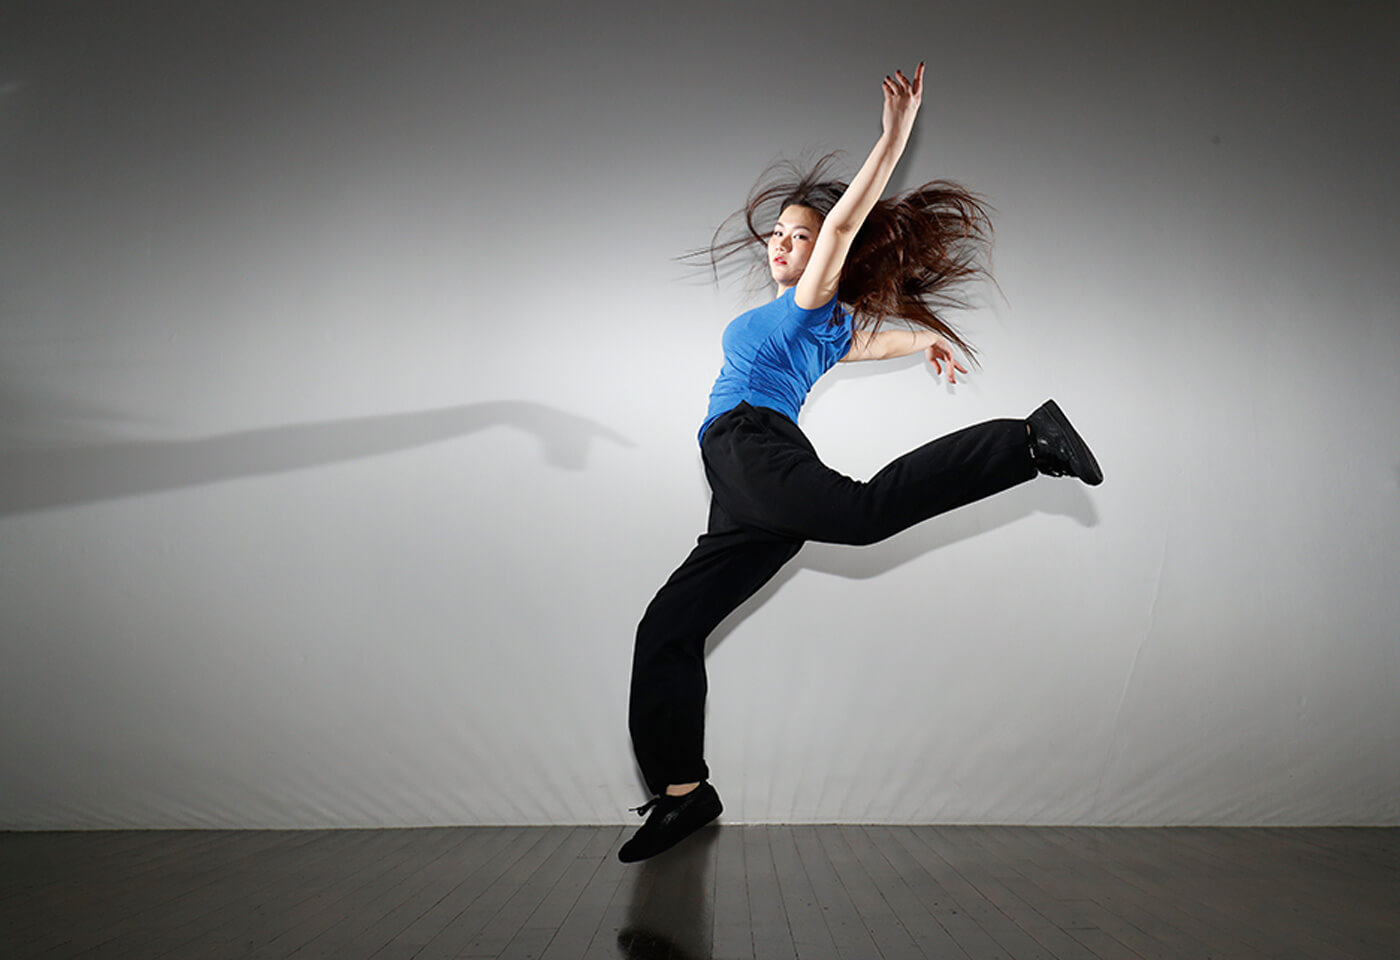 Dancer in studio taken with Canon Speedlite 600EX II-RT flash